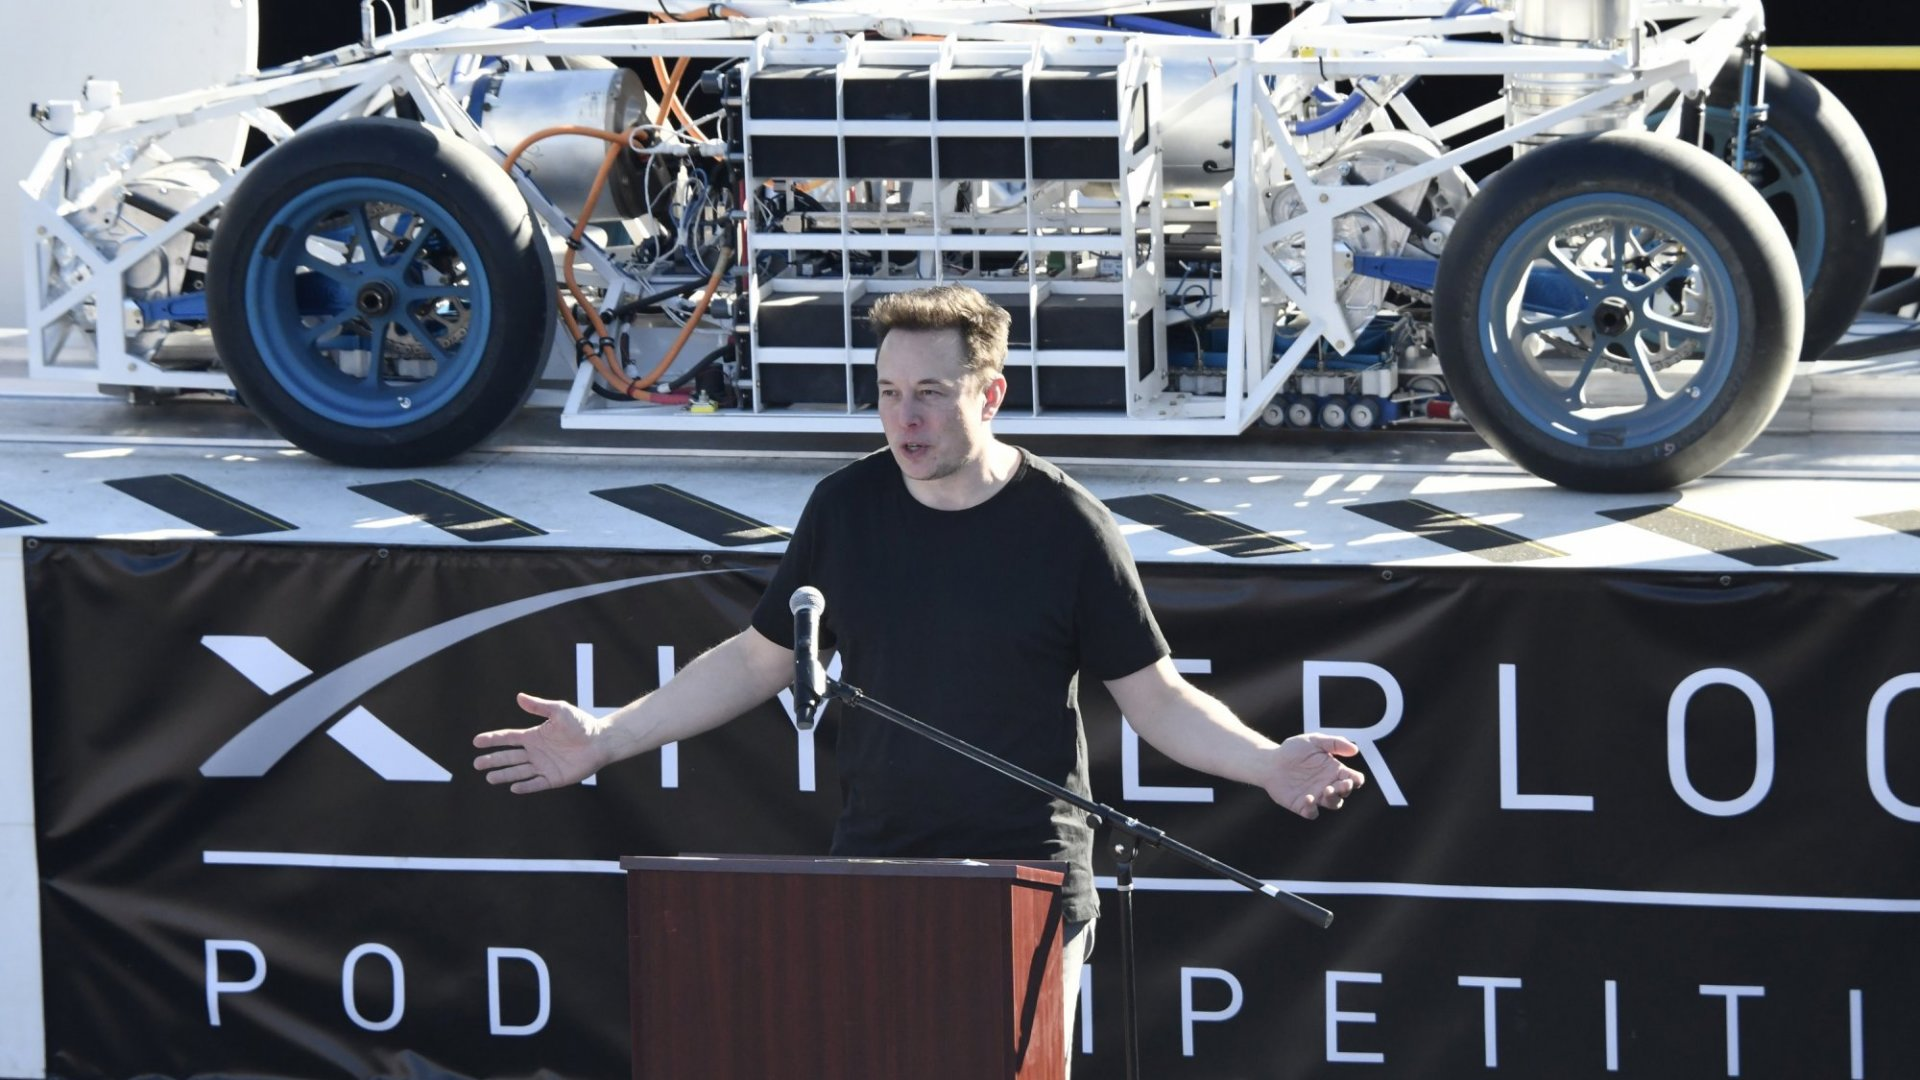 Uber's CEO Perfectly Shut Down Elon Musk's Attack With Just 1 Tweet